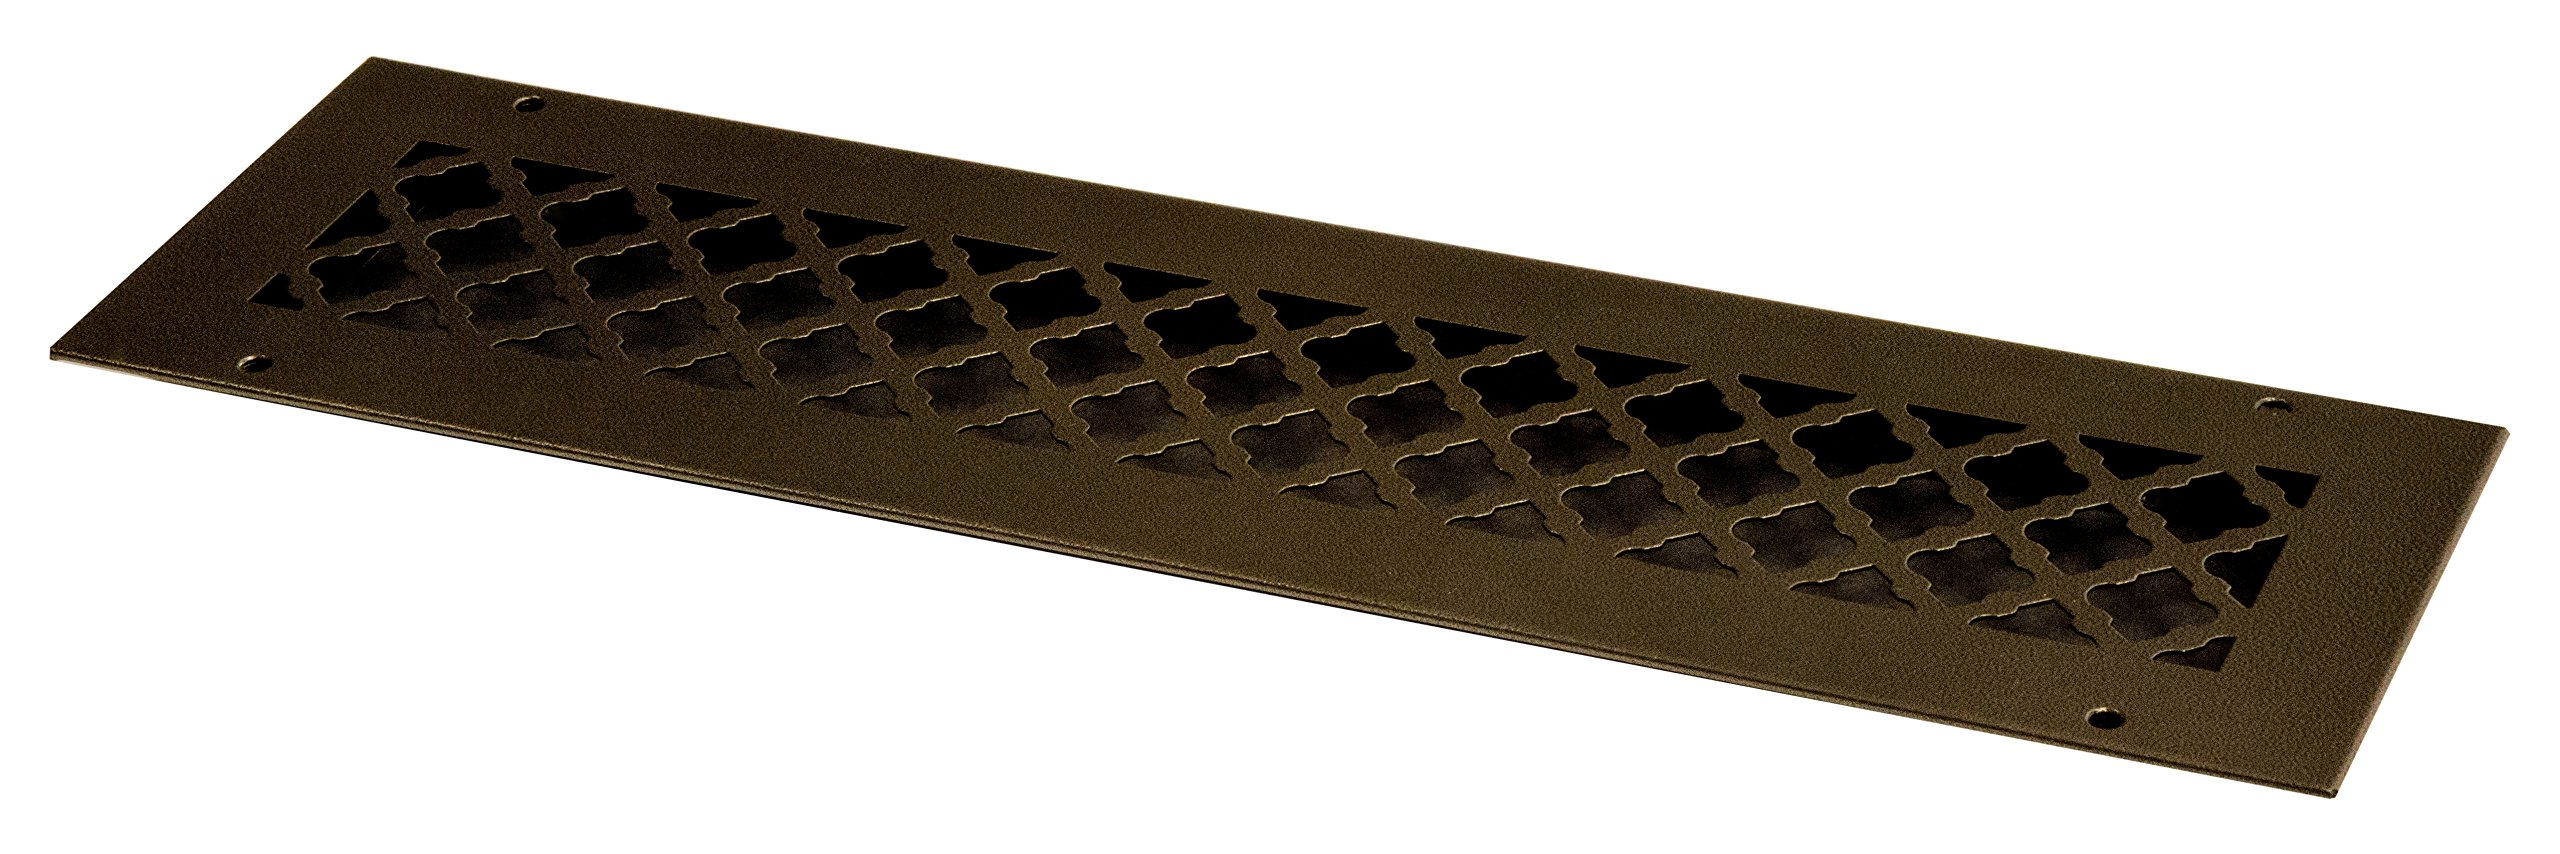 SteelCrest BTU20X4RORBH Bronze Series Designer Wall/Ceiling Vent Cover, with Mounting Screws, Oil Rubbed Bronze